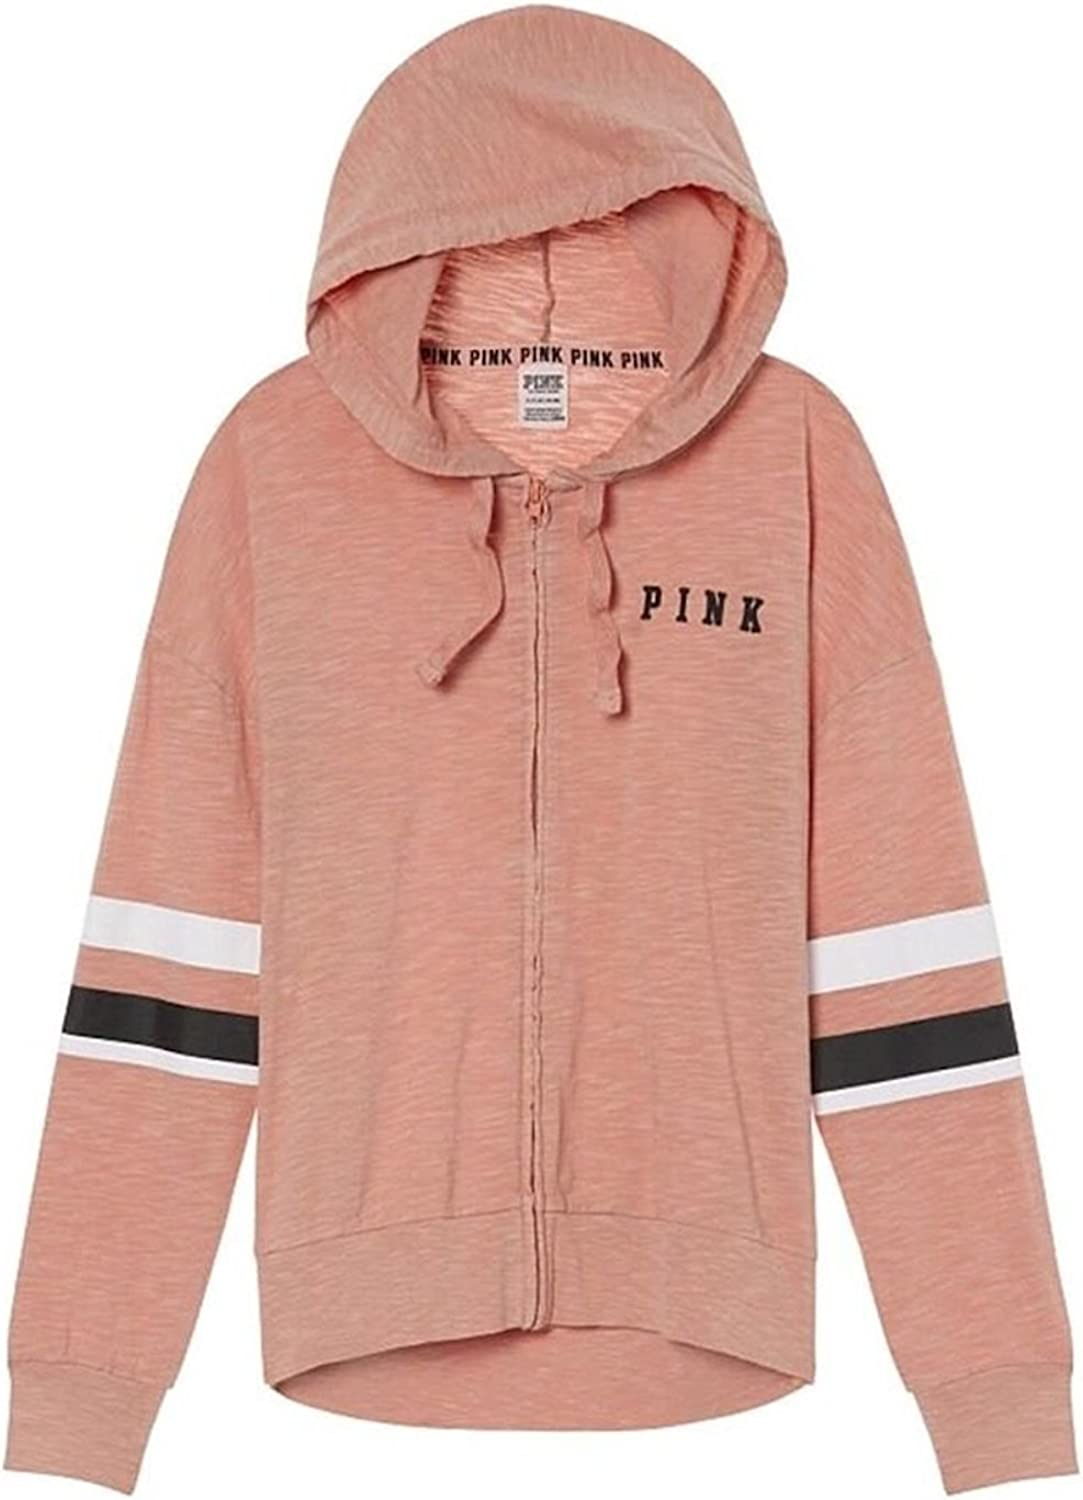 Victoria's Secret Pink New Slouchy Full Zip Hoodie, Light Soft Begonia, XSmall (Oversize)